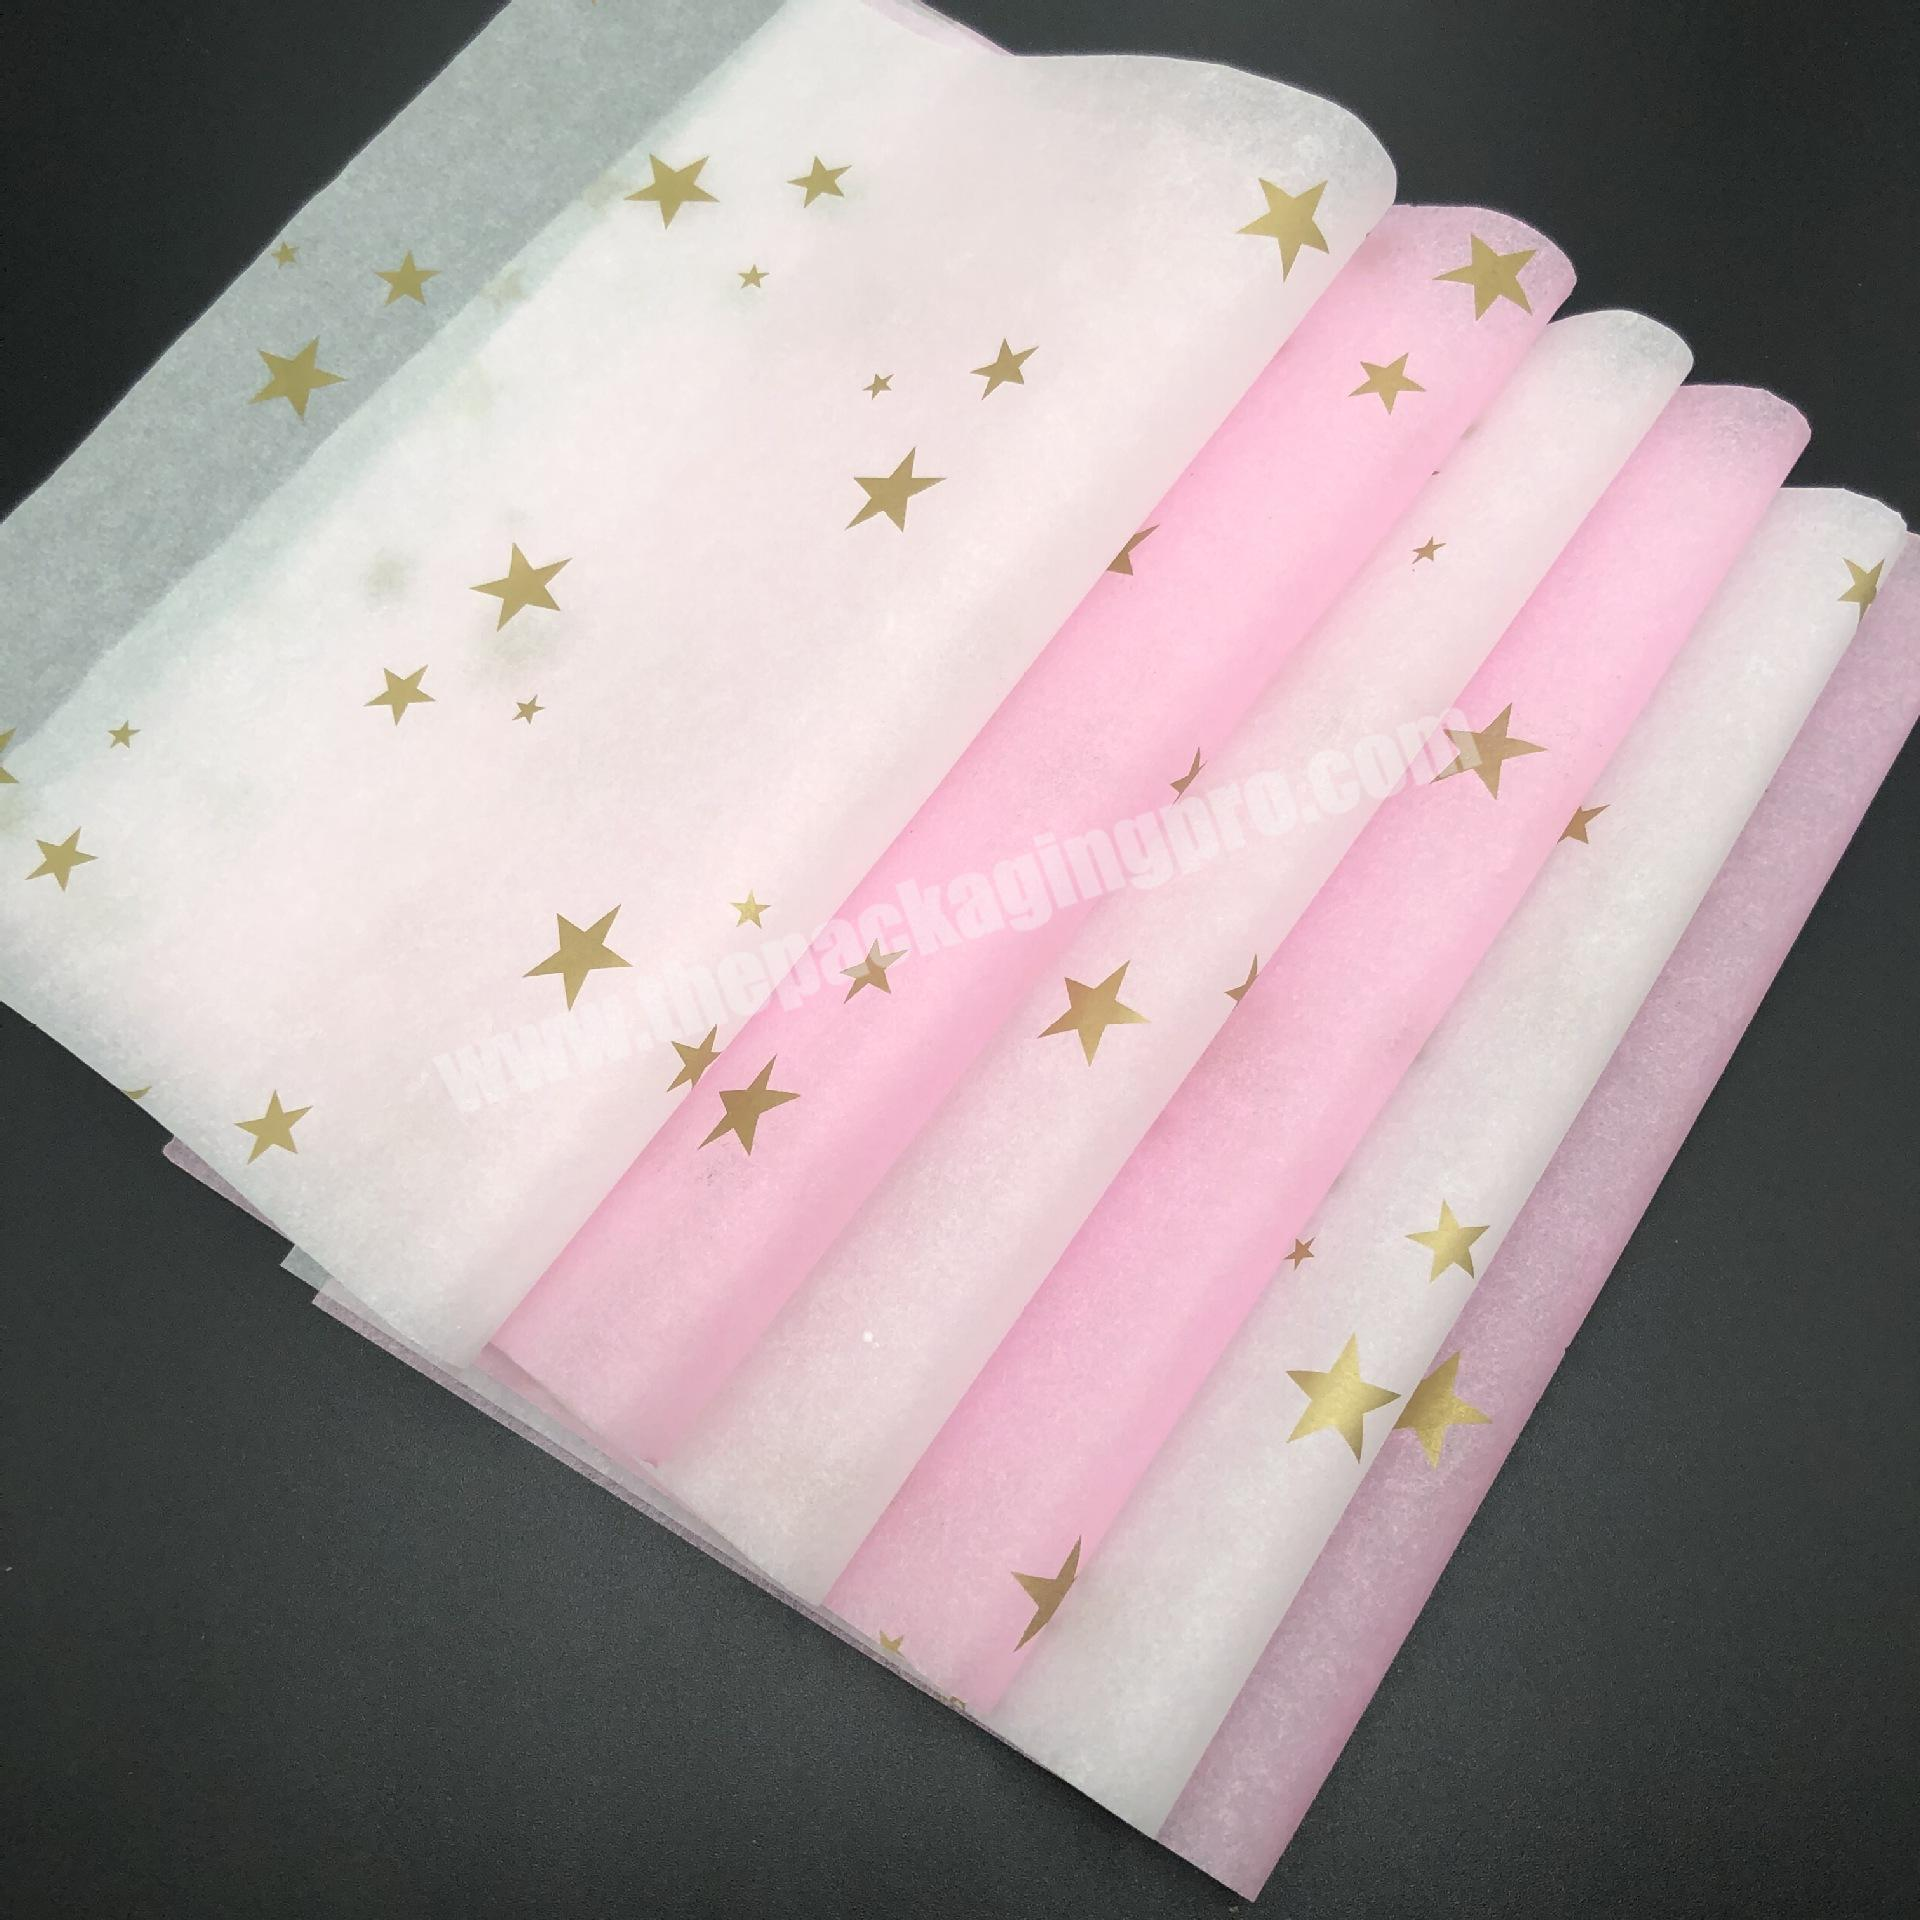 Supplier Luxury custom printed colour garment wrapping tissue paper with gold logo  for gift wrapping